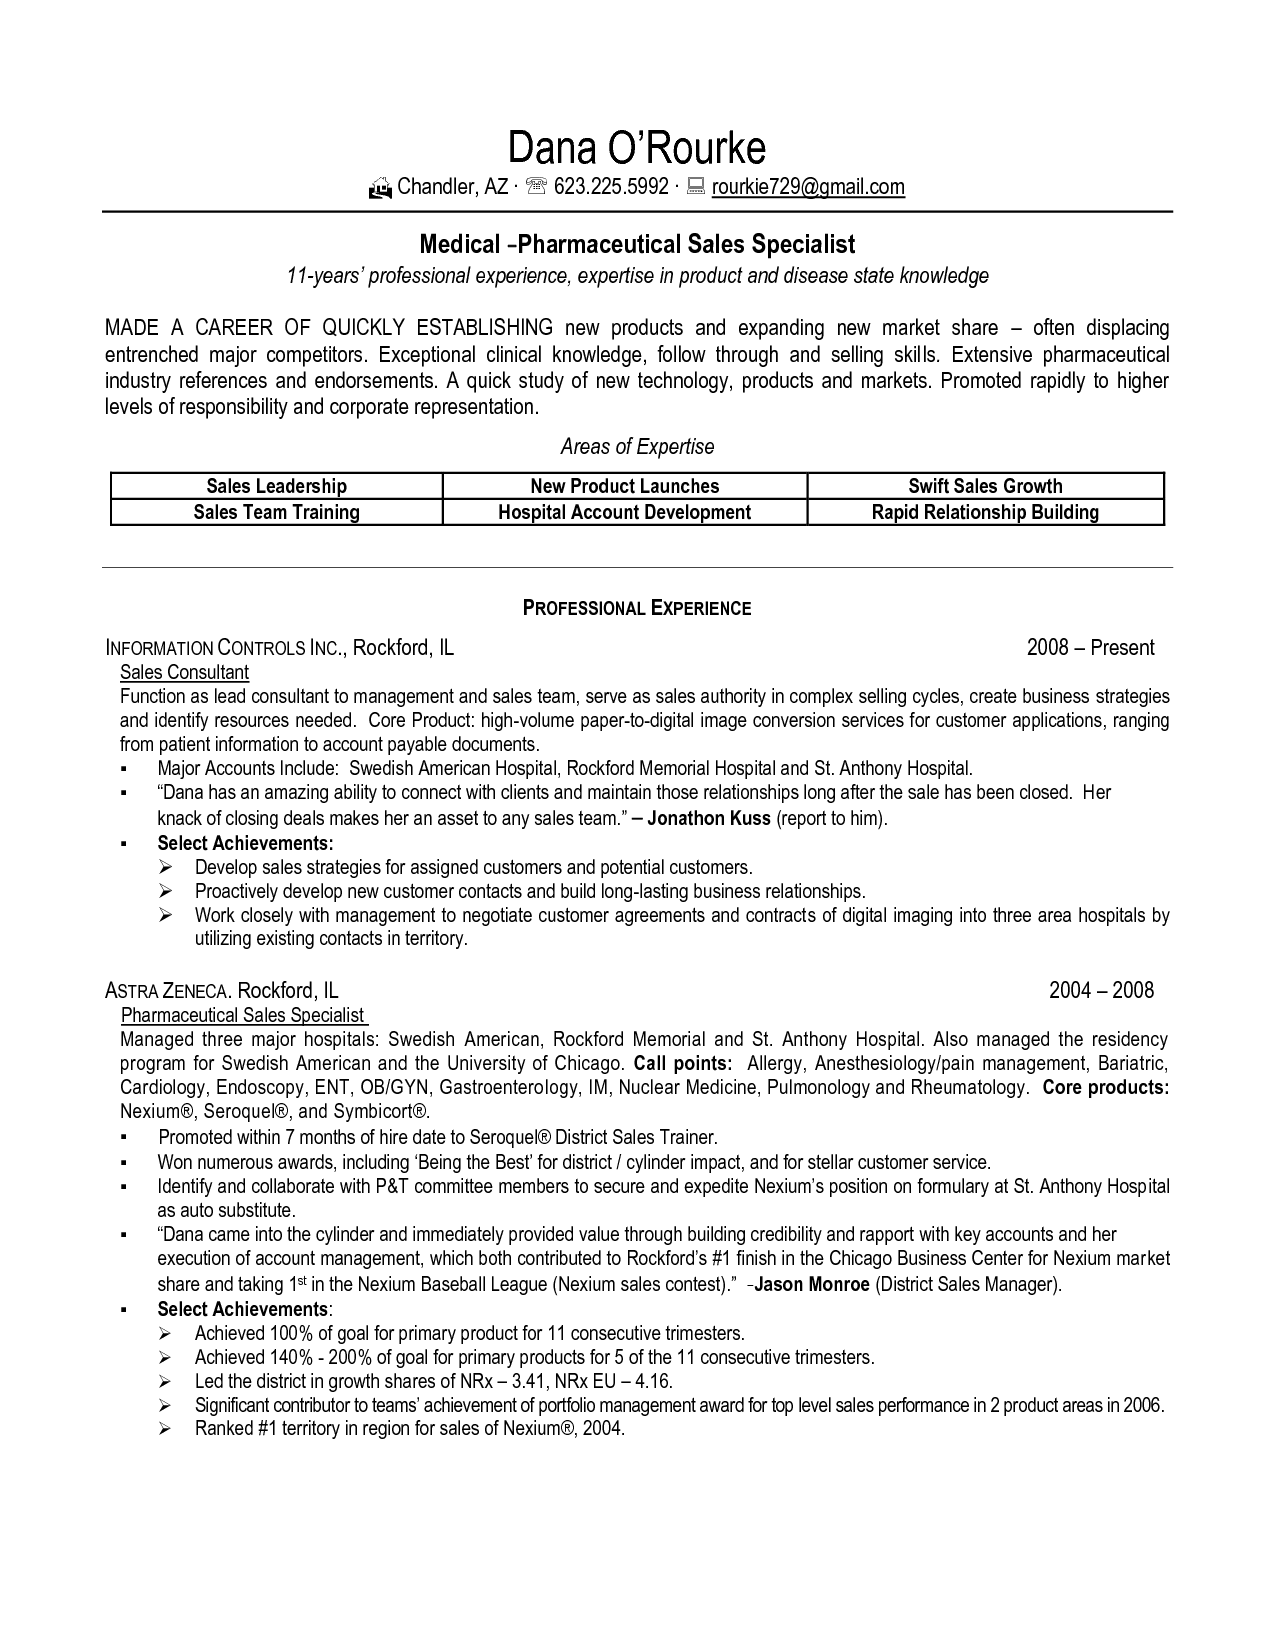 Best Resume Examples Fair Sample Resume For Pharmaceutical Industry Sample Resume For